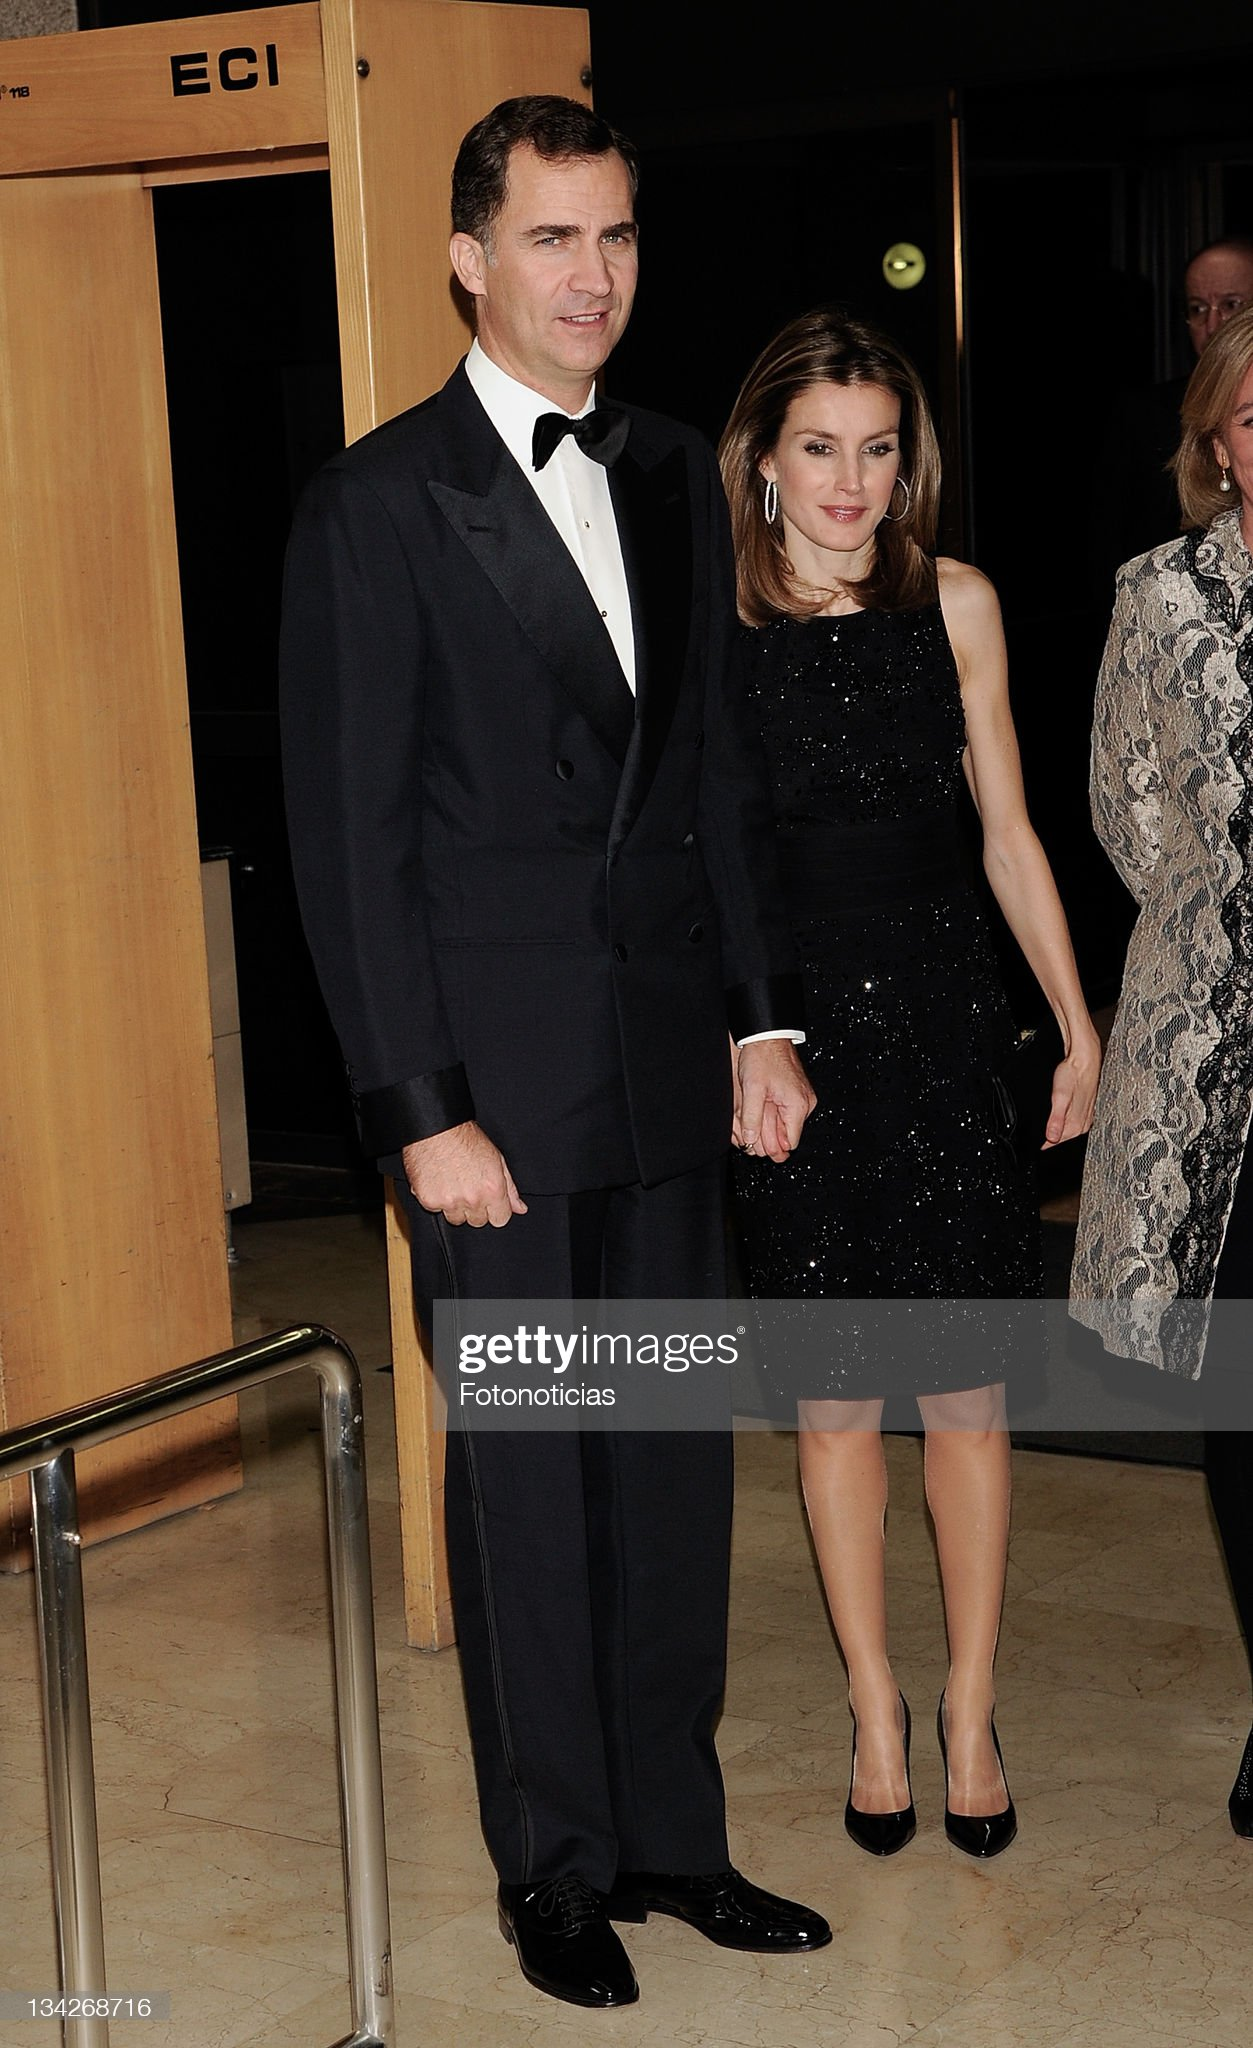 Spanish Royals Attend a Dinner in Honour of 'Mariano de Cavia', 'Mingote' and 'Luca de Tena' Awards Winners : News Photo